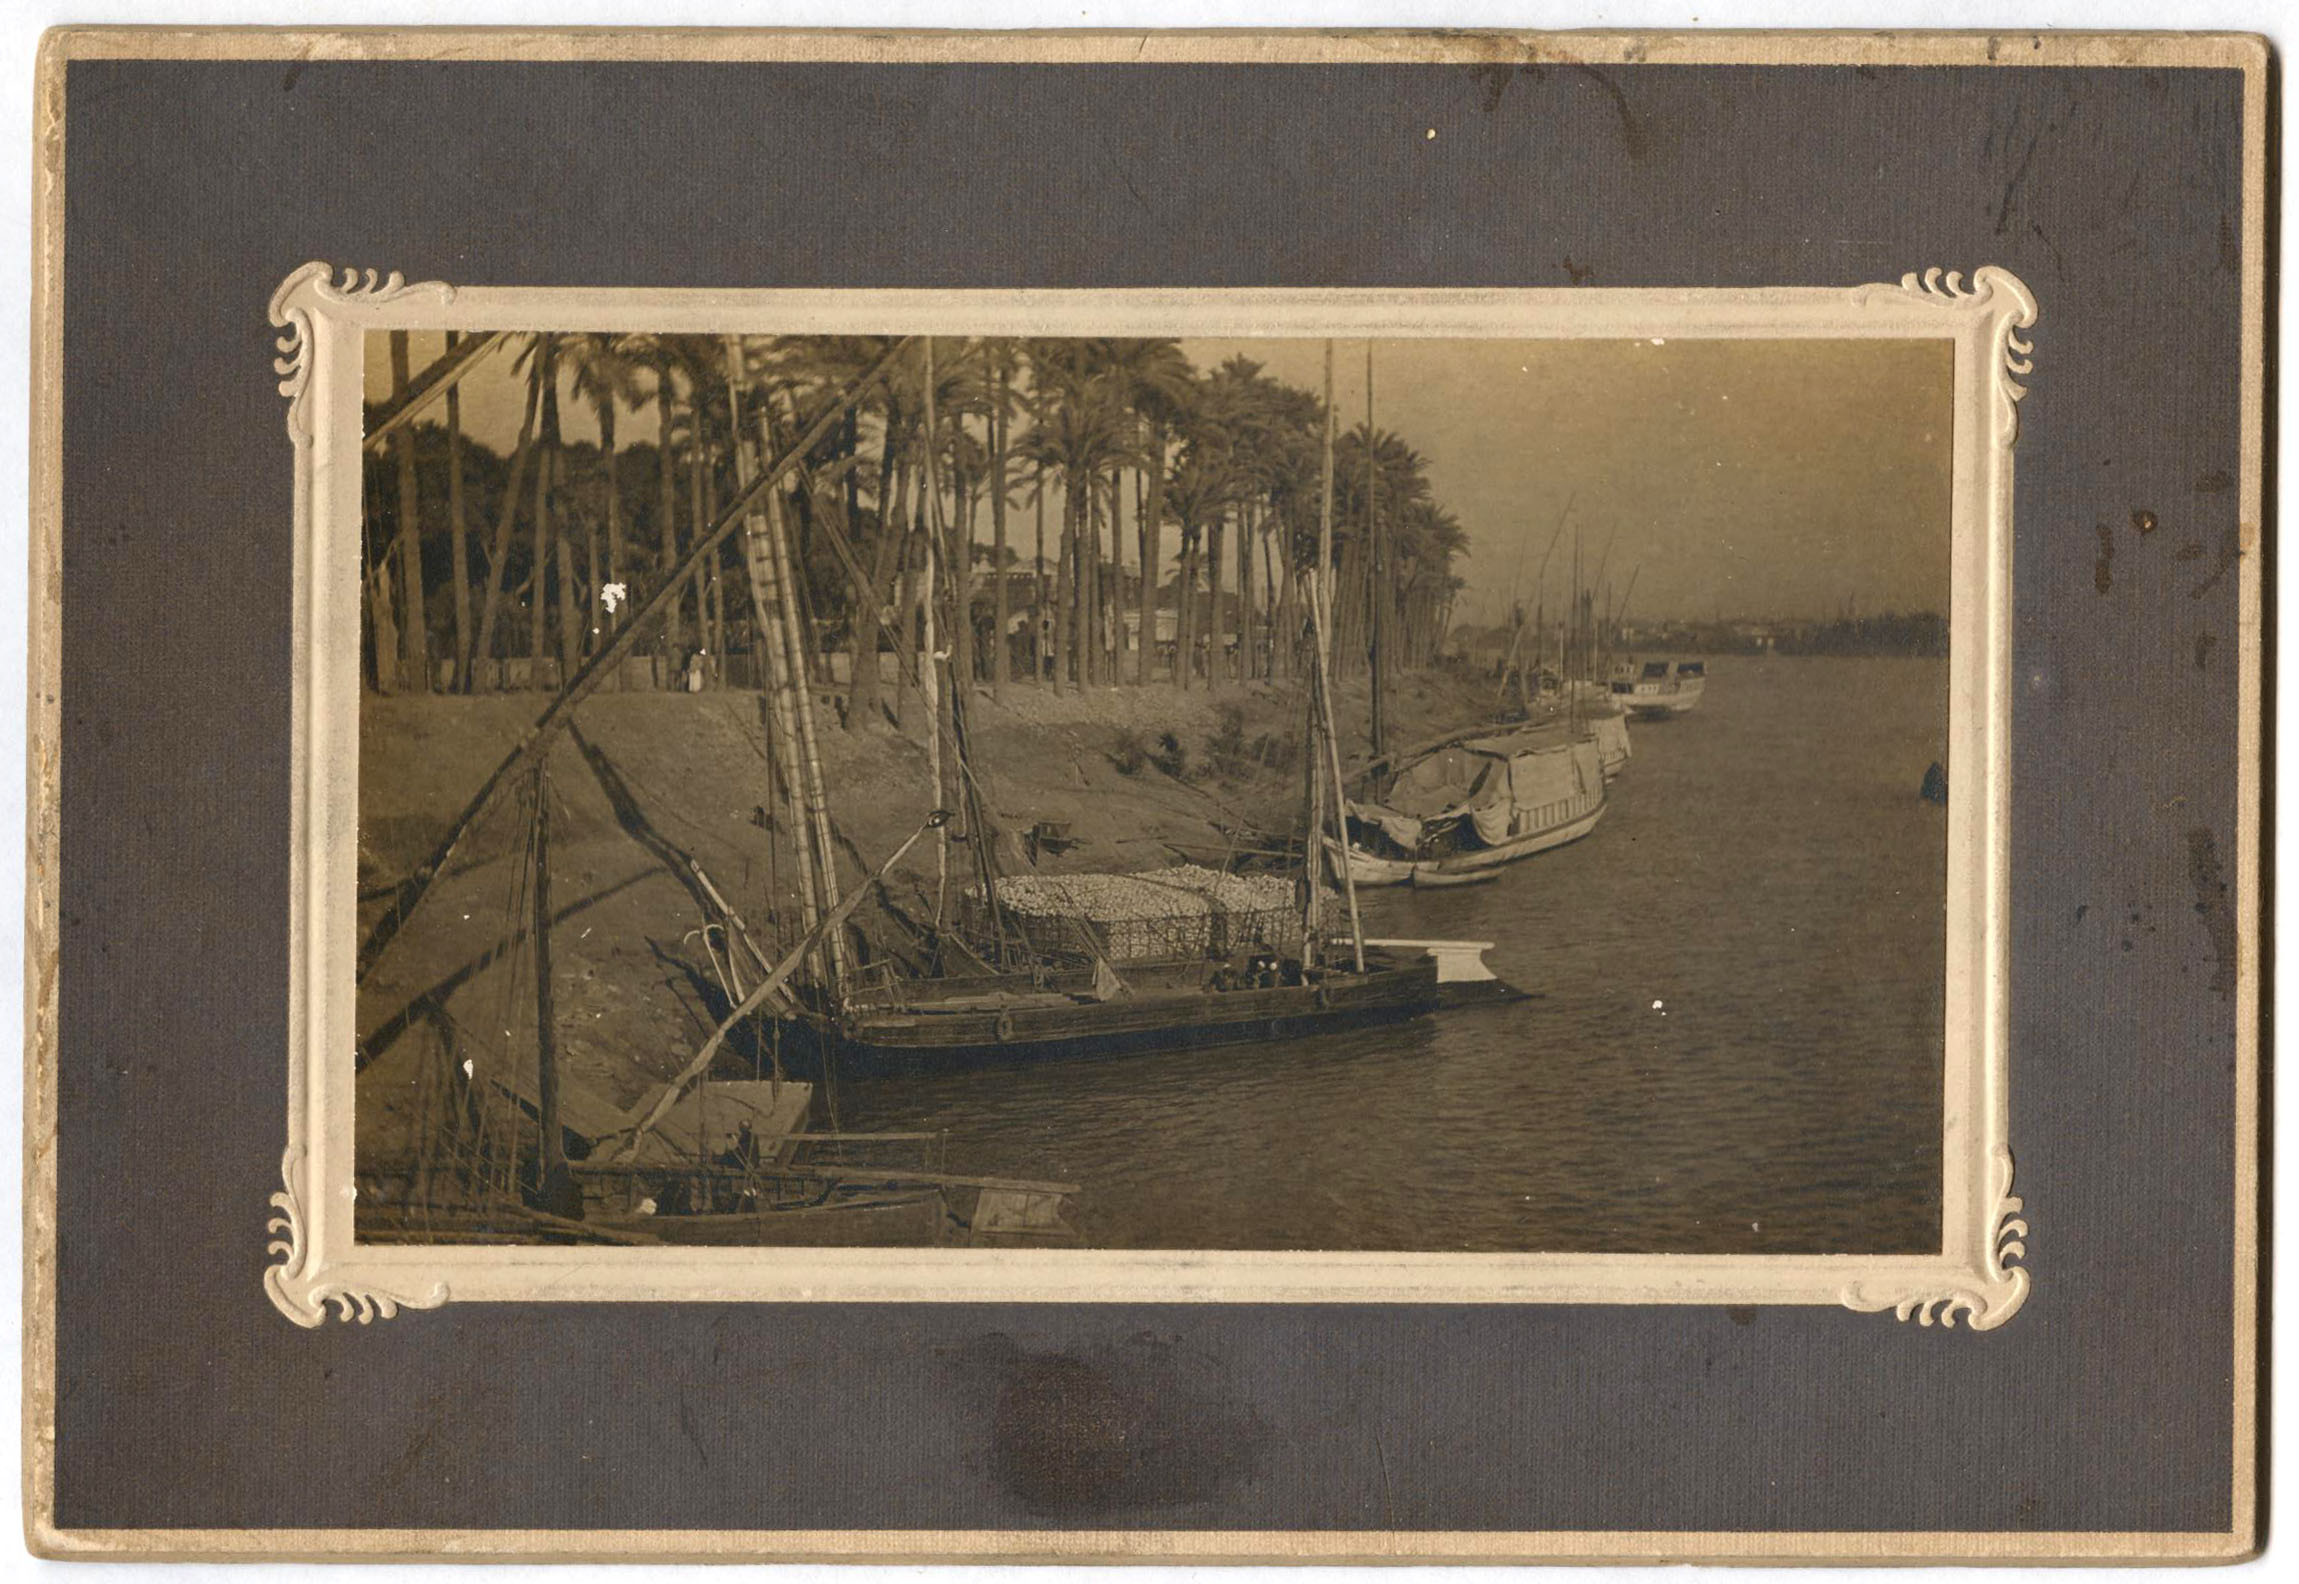 The Nile at Cairo - A large Cabinet Card in the Frank Lesher Collection